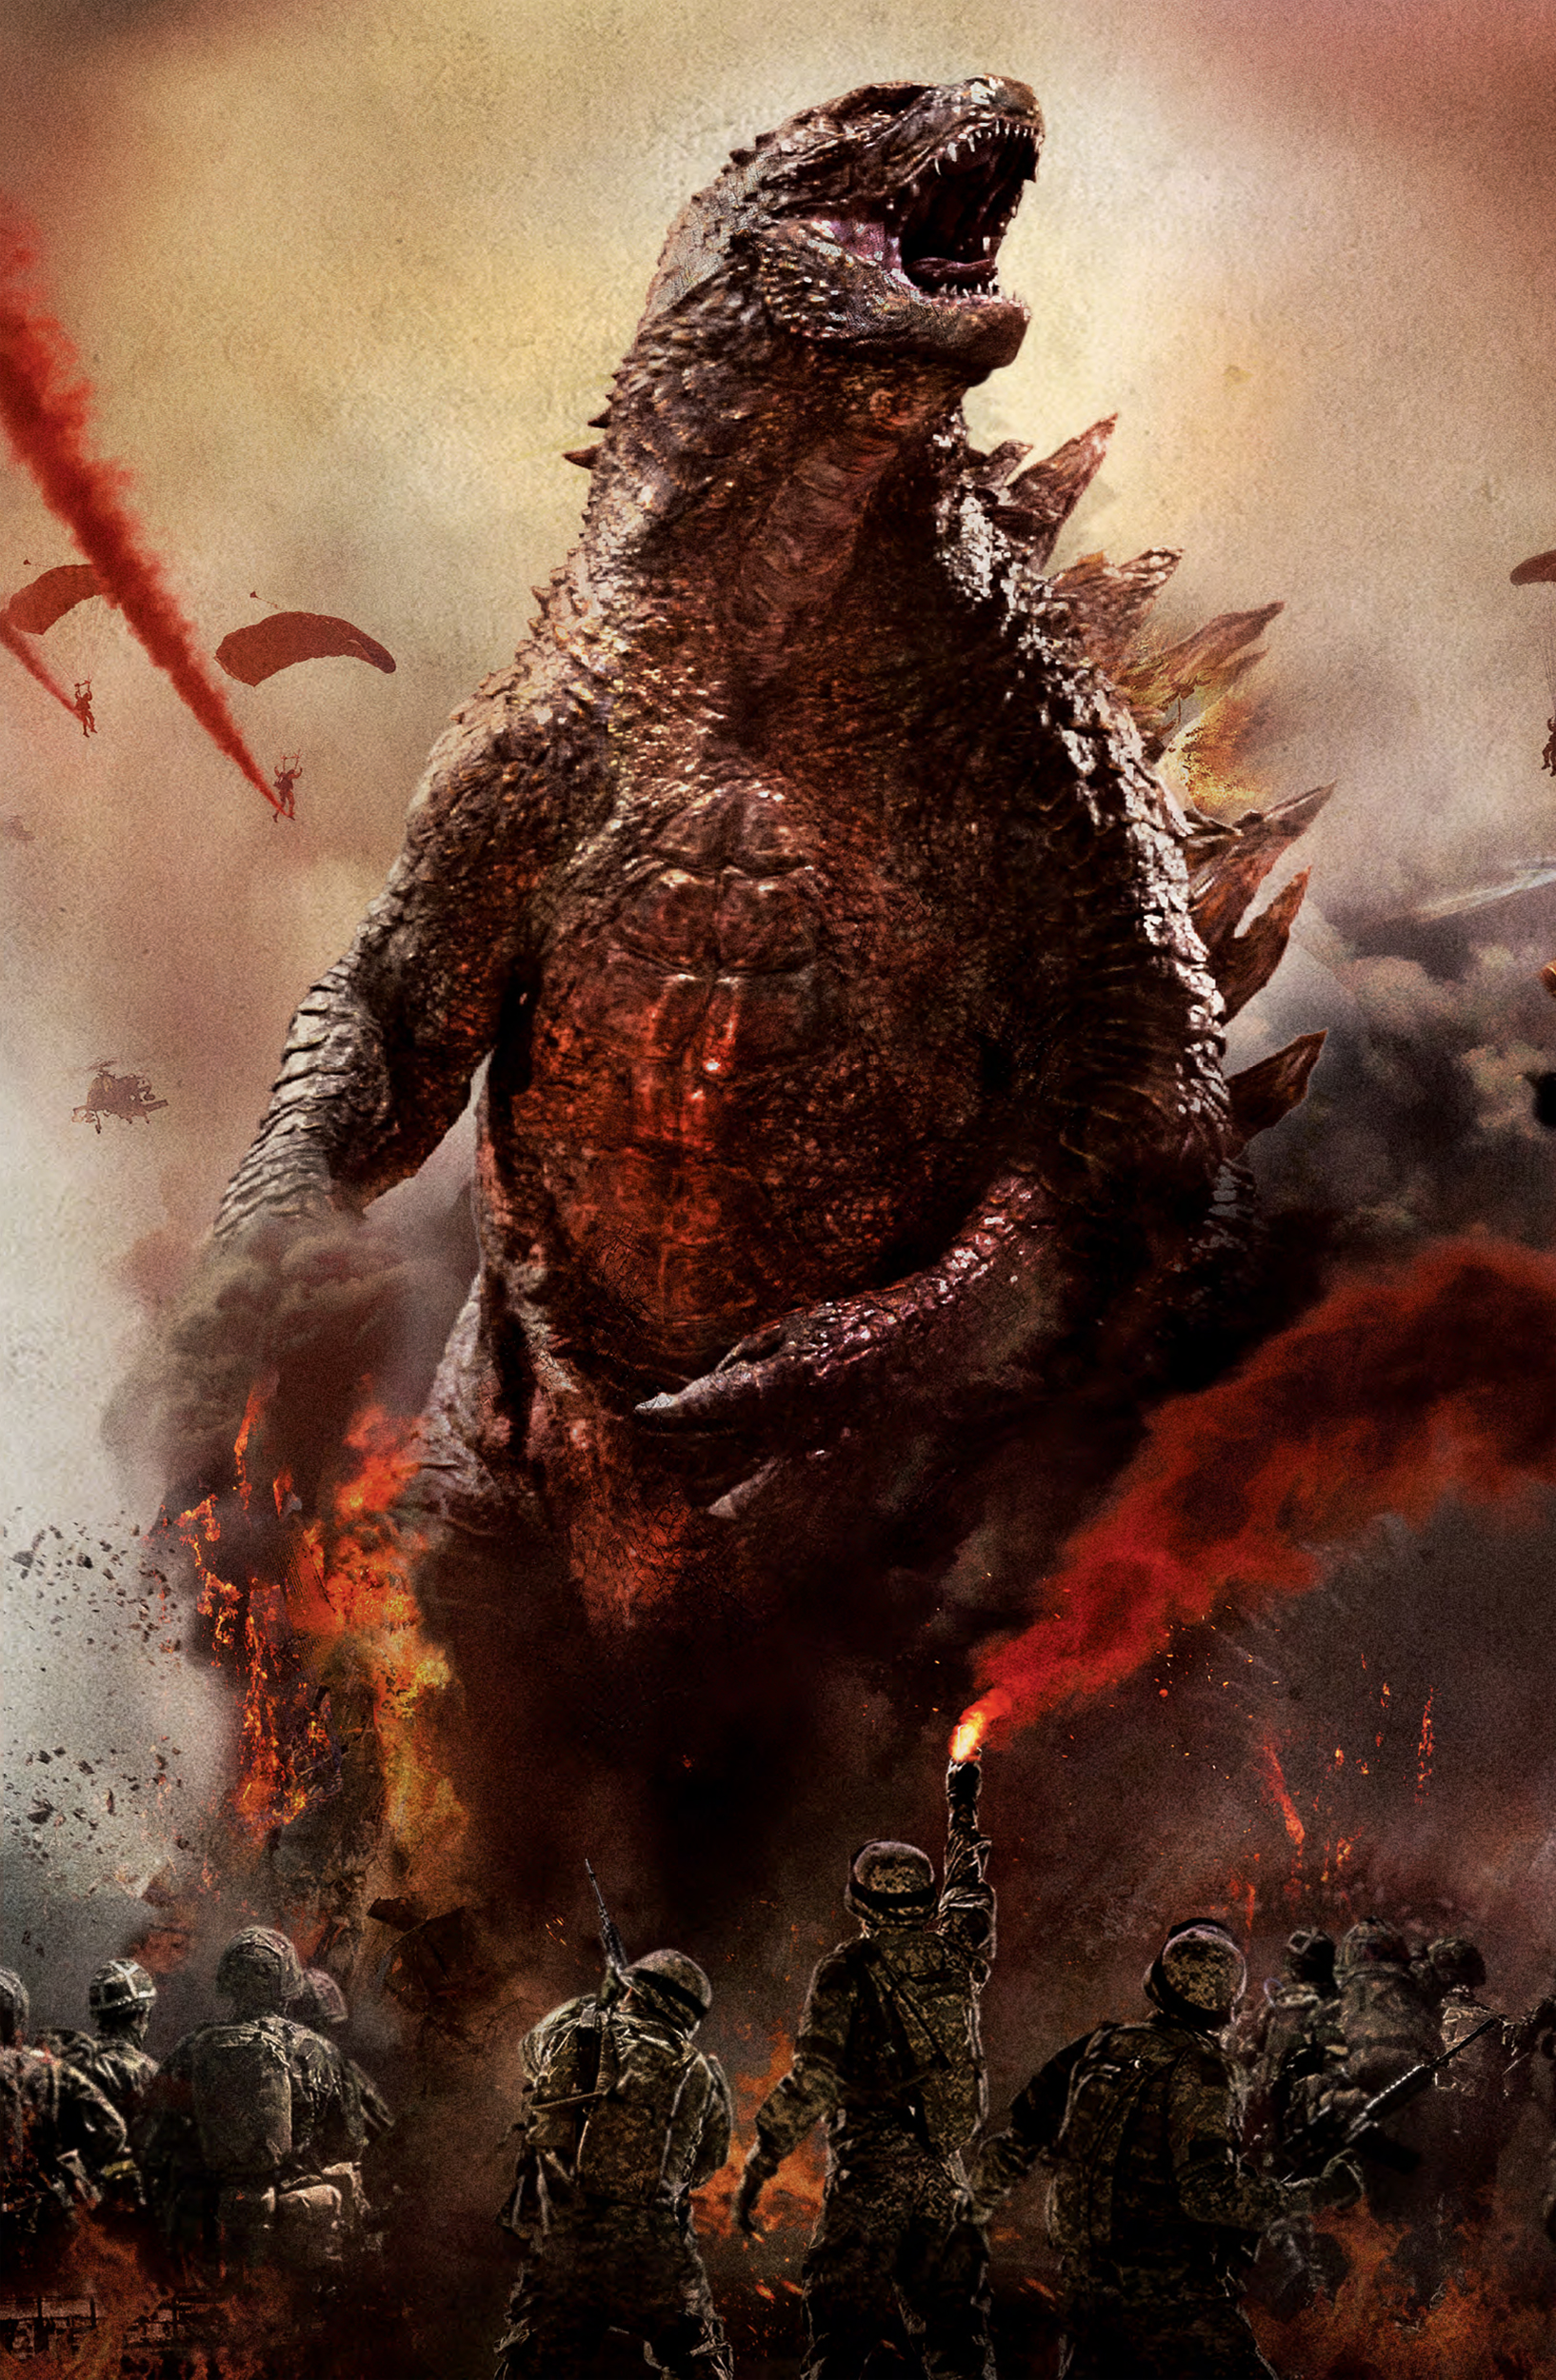 Godzilla 2014 Images Is Cool Wallpapers